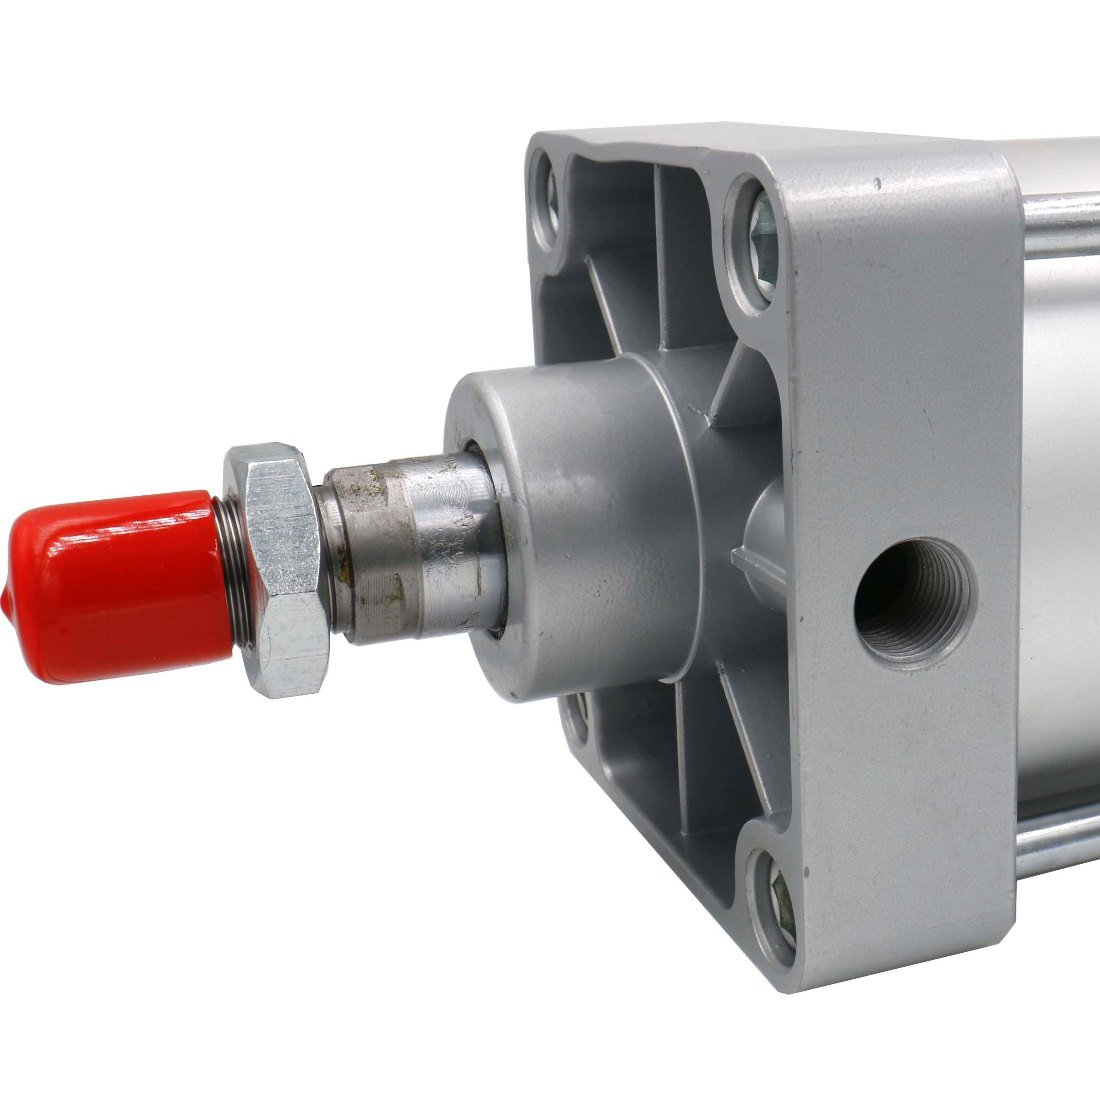 Baomain Pneumatic Air Cylinder SC 125-300 PT 1/2; Bore: 5'', Stroke: 12''; Screwed Piston Rod Dual Action by Baomain (Image #3)